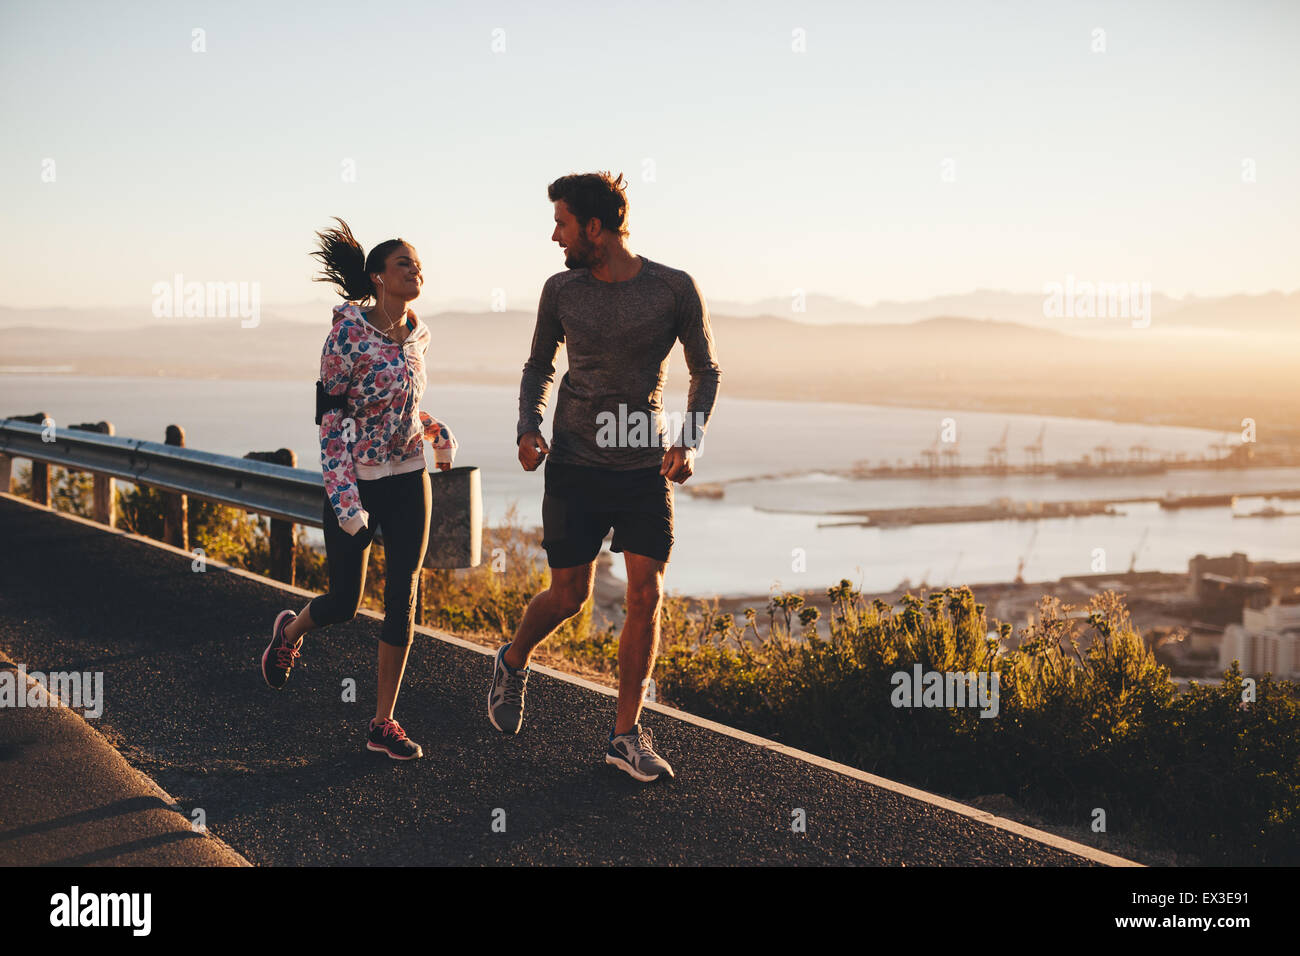 Shot of two people running on a country road in morning. Young man and woman jogging outdoors during sunrise. - Stock Image